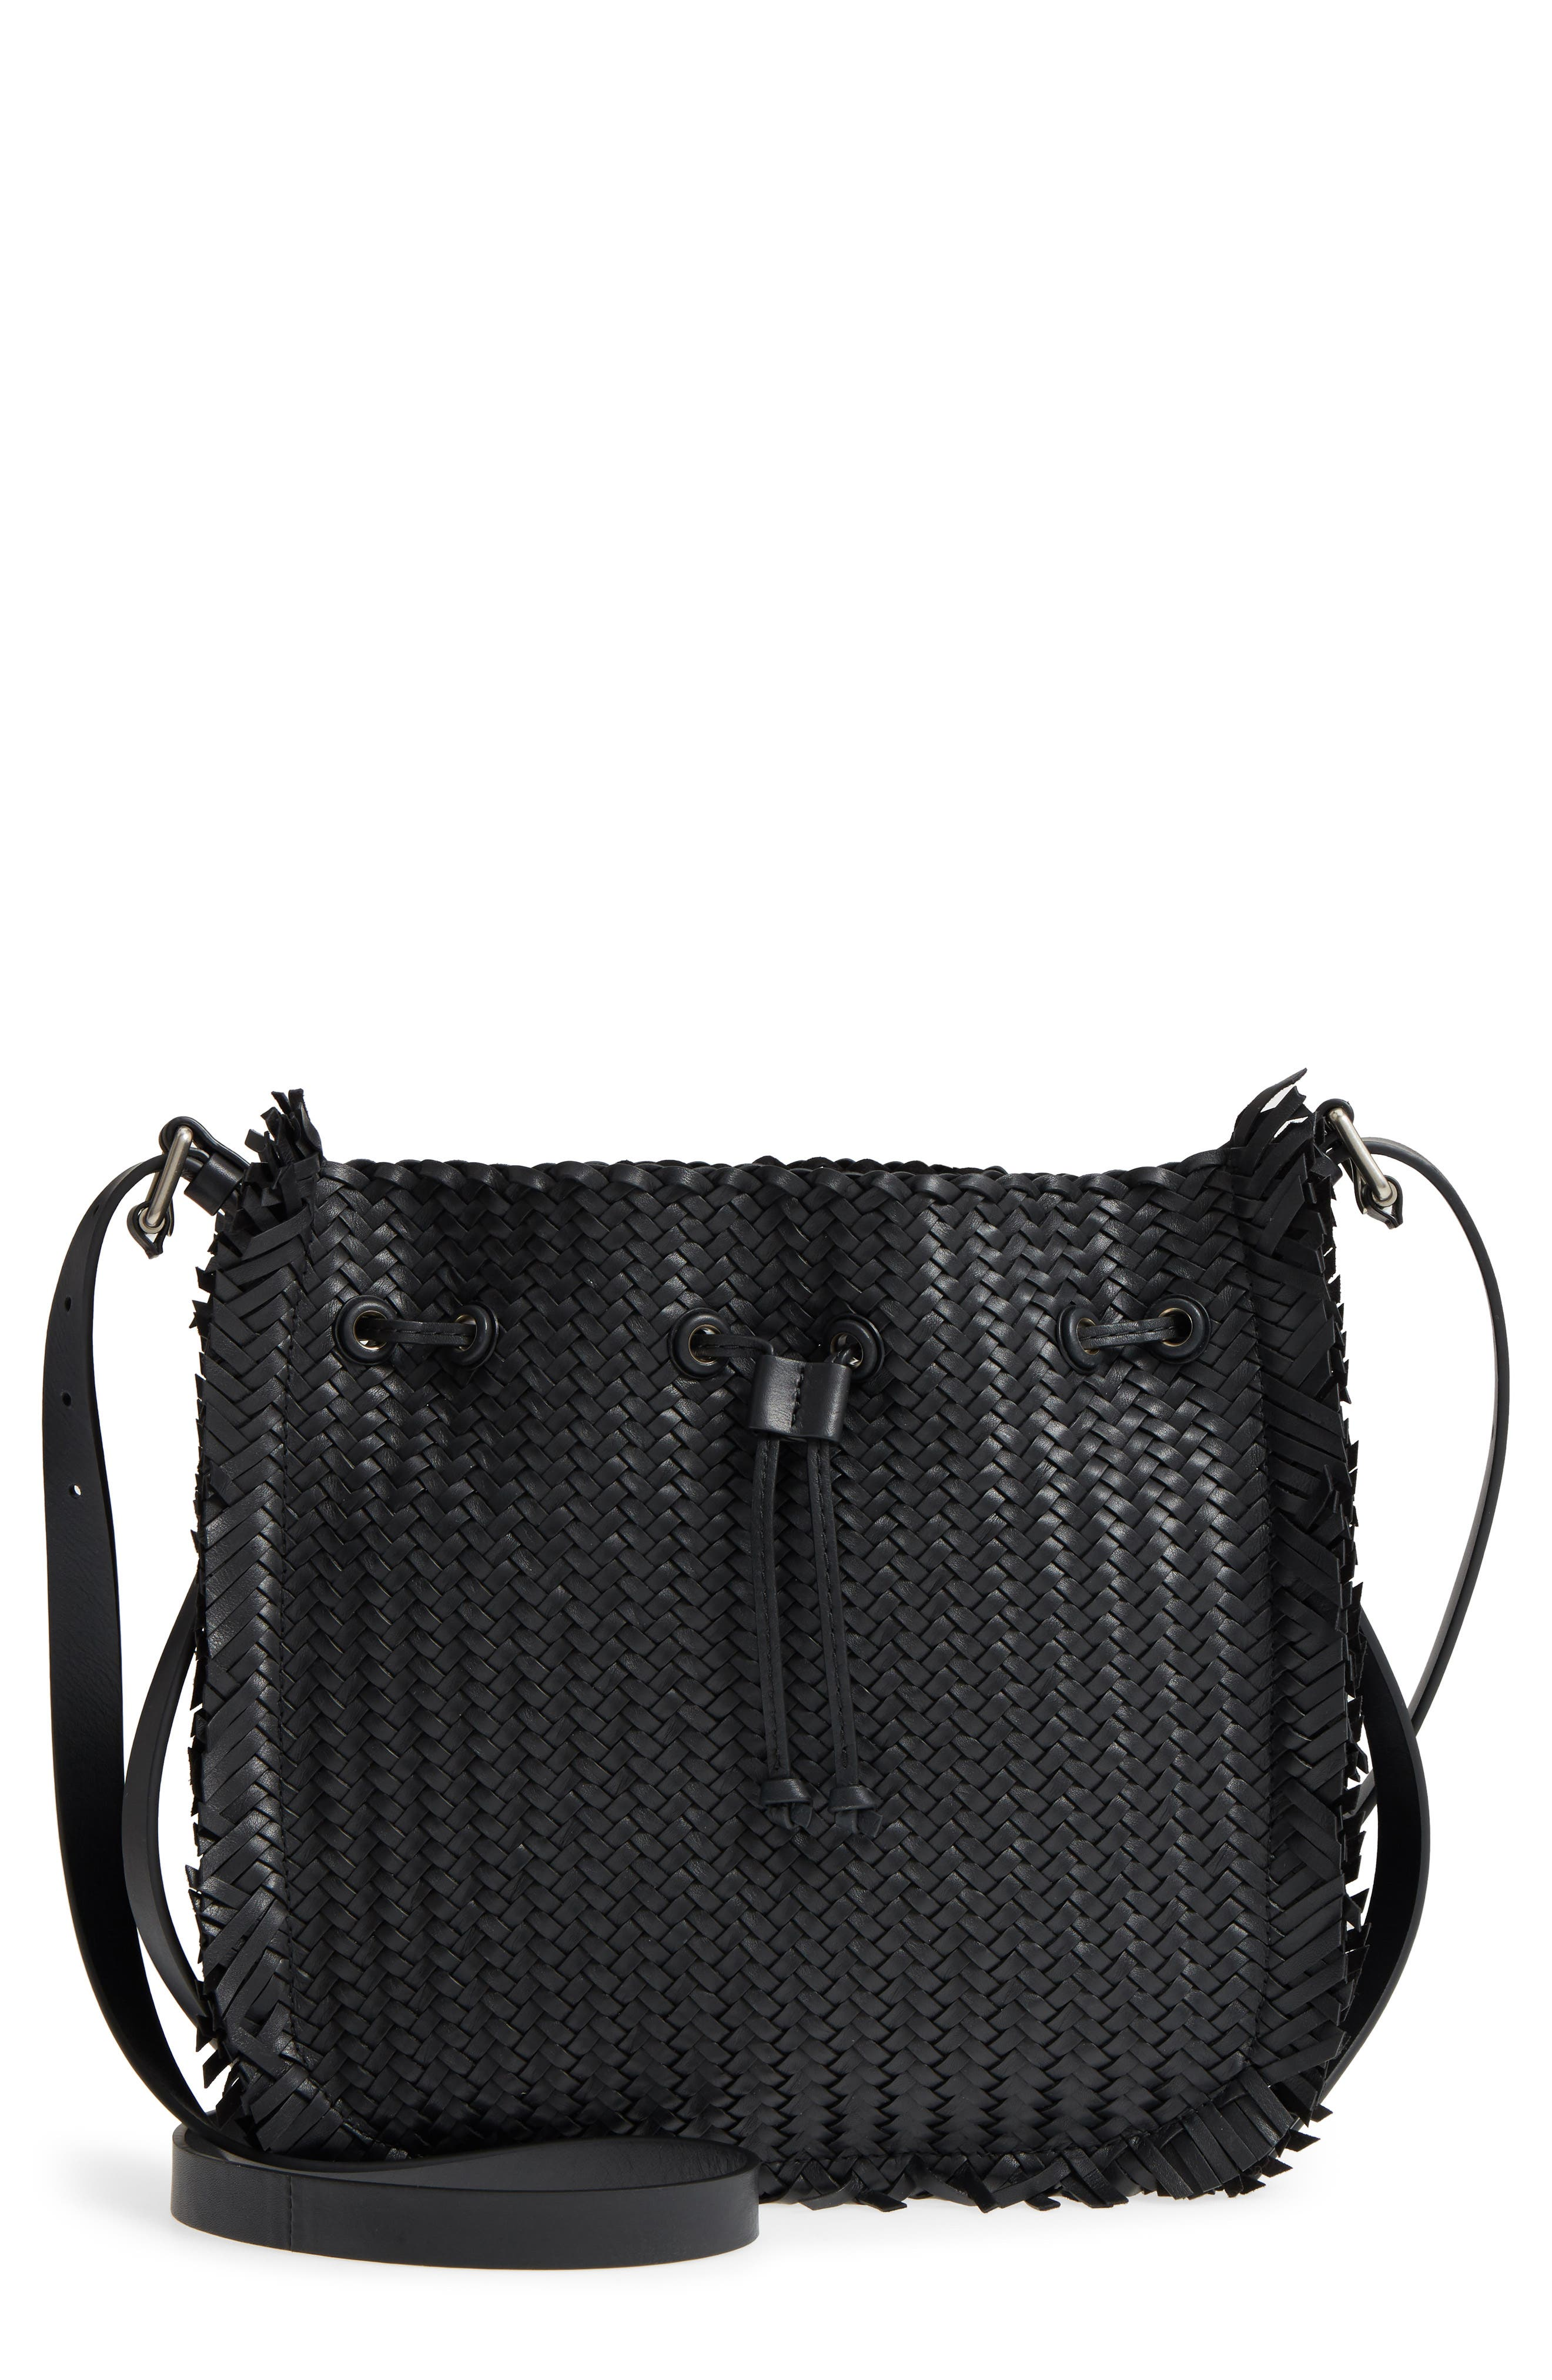 Michael Kors Maldives Woven Frayed Leather Tote